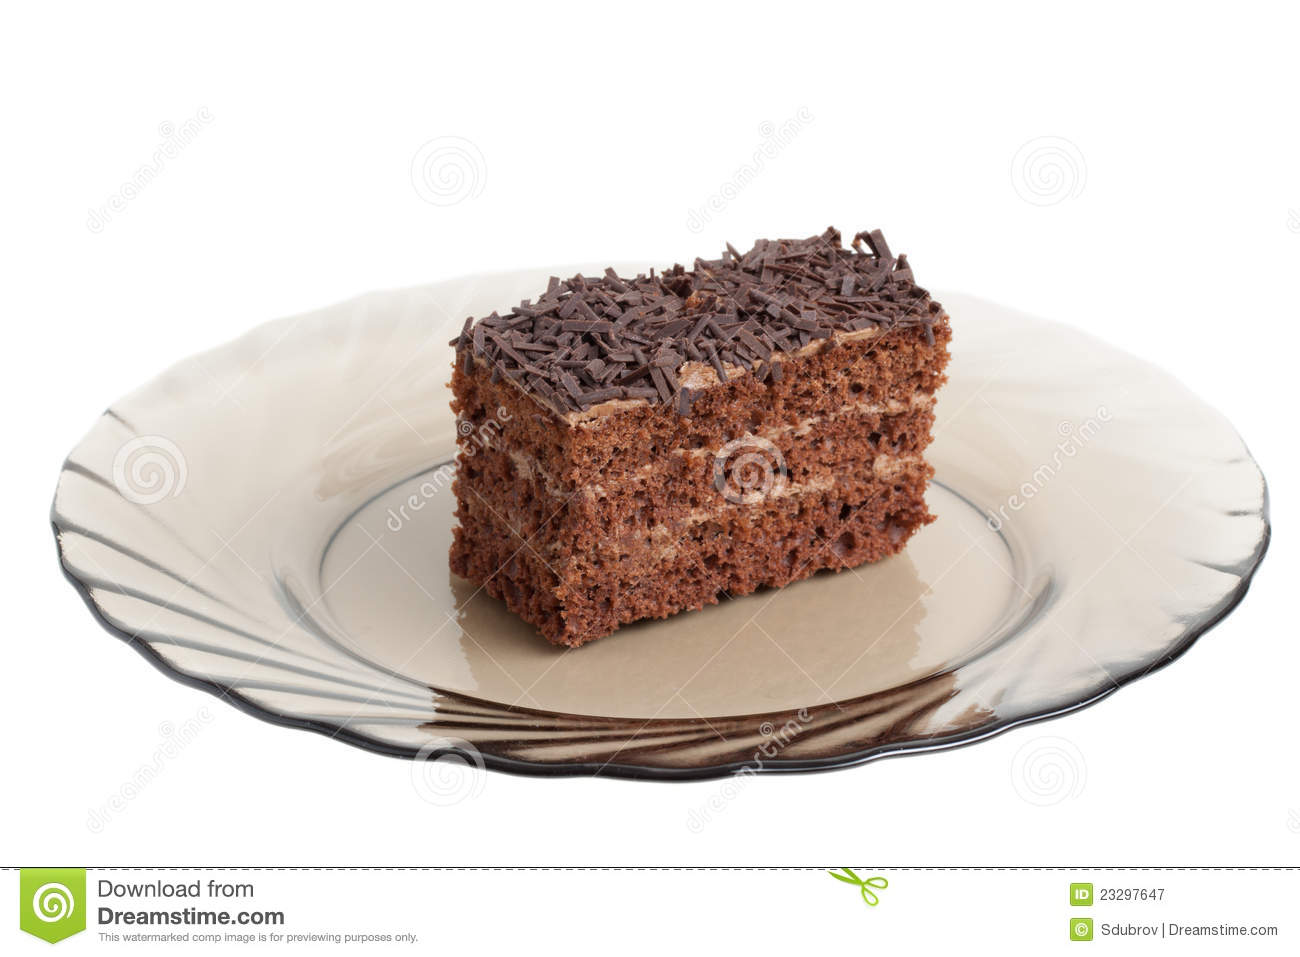 Piece of chocolate cake on a glass plate  sc 1 st  Dreamstime.com & Piece Of Chocolate Cake On A Glass Plate Stock Image - Image of food ...